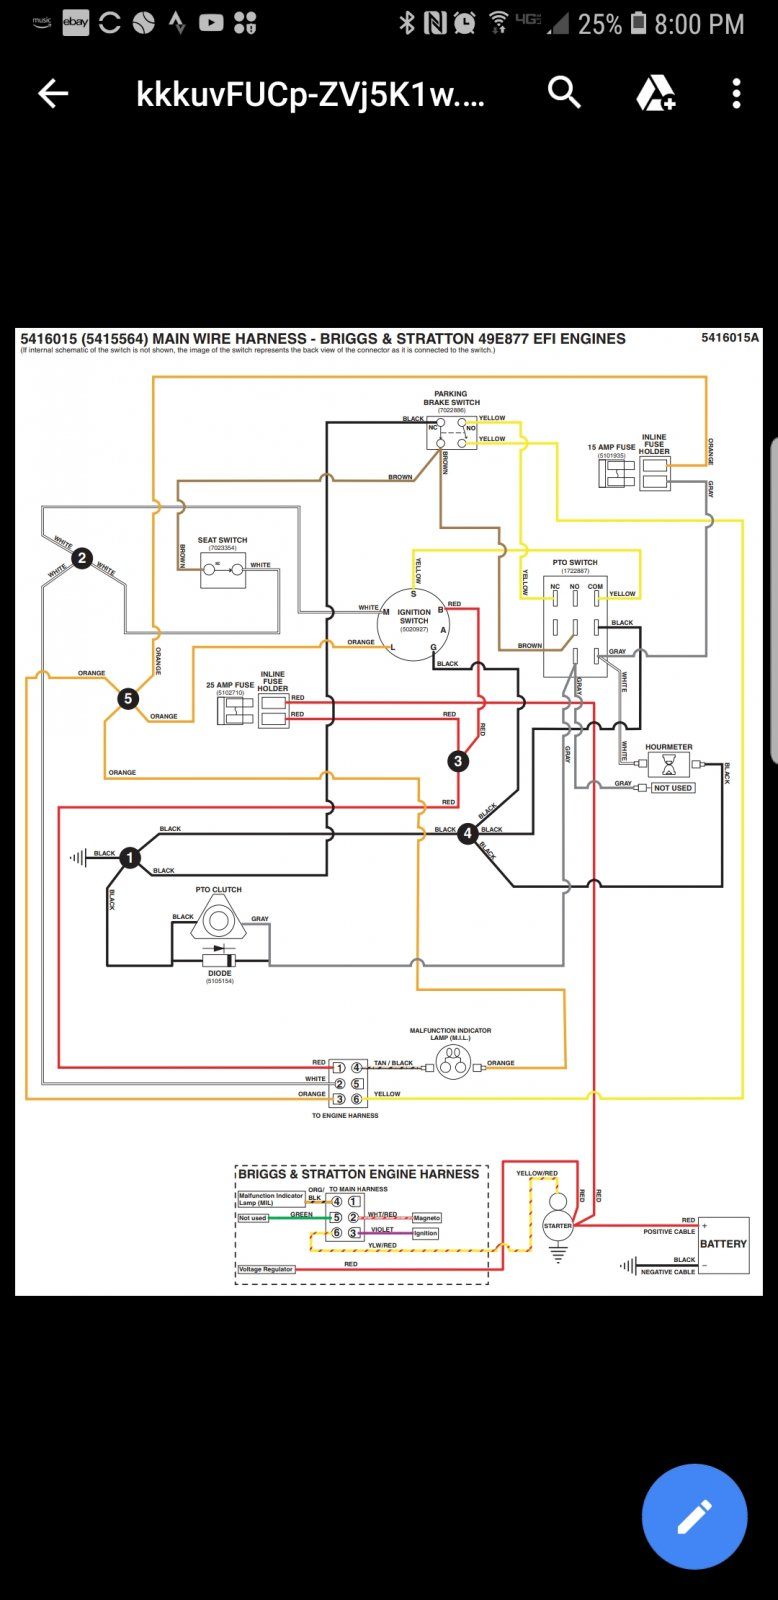 Hustler Super Z Wiring Diagram from www.lawnsite.com